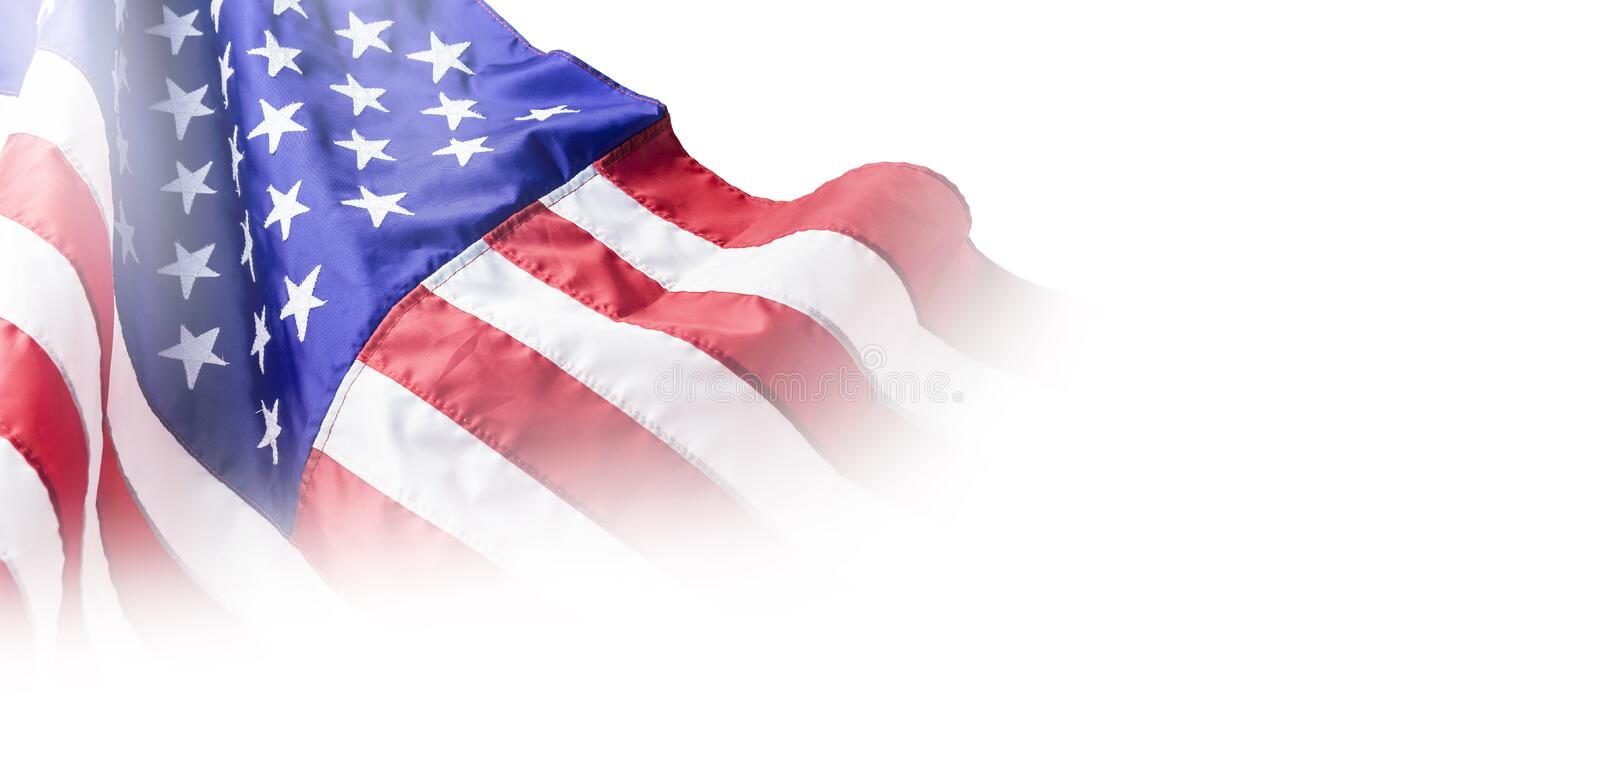 USA or american flag isolated on white background royalty free stock images